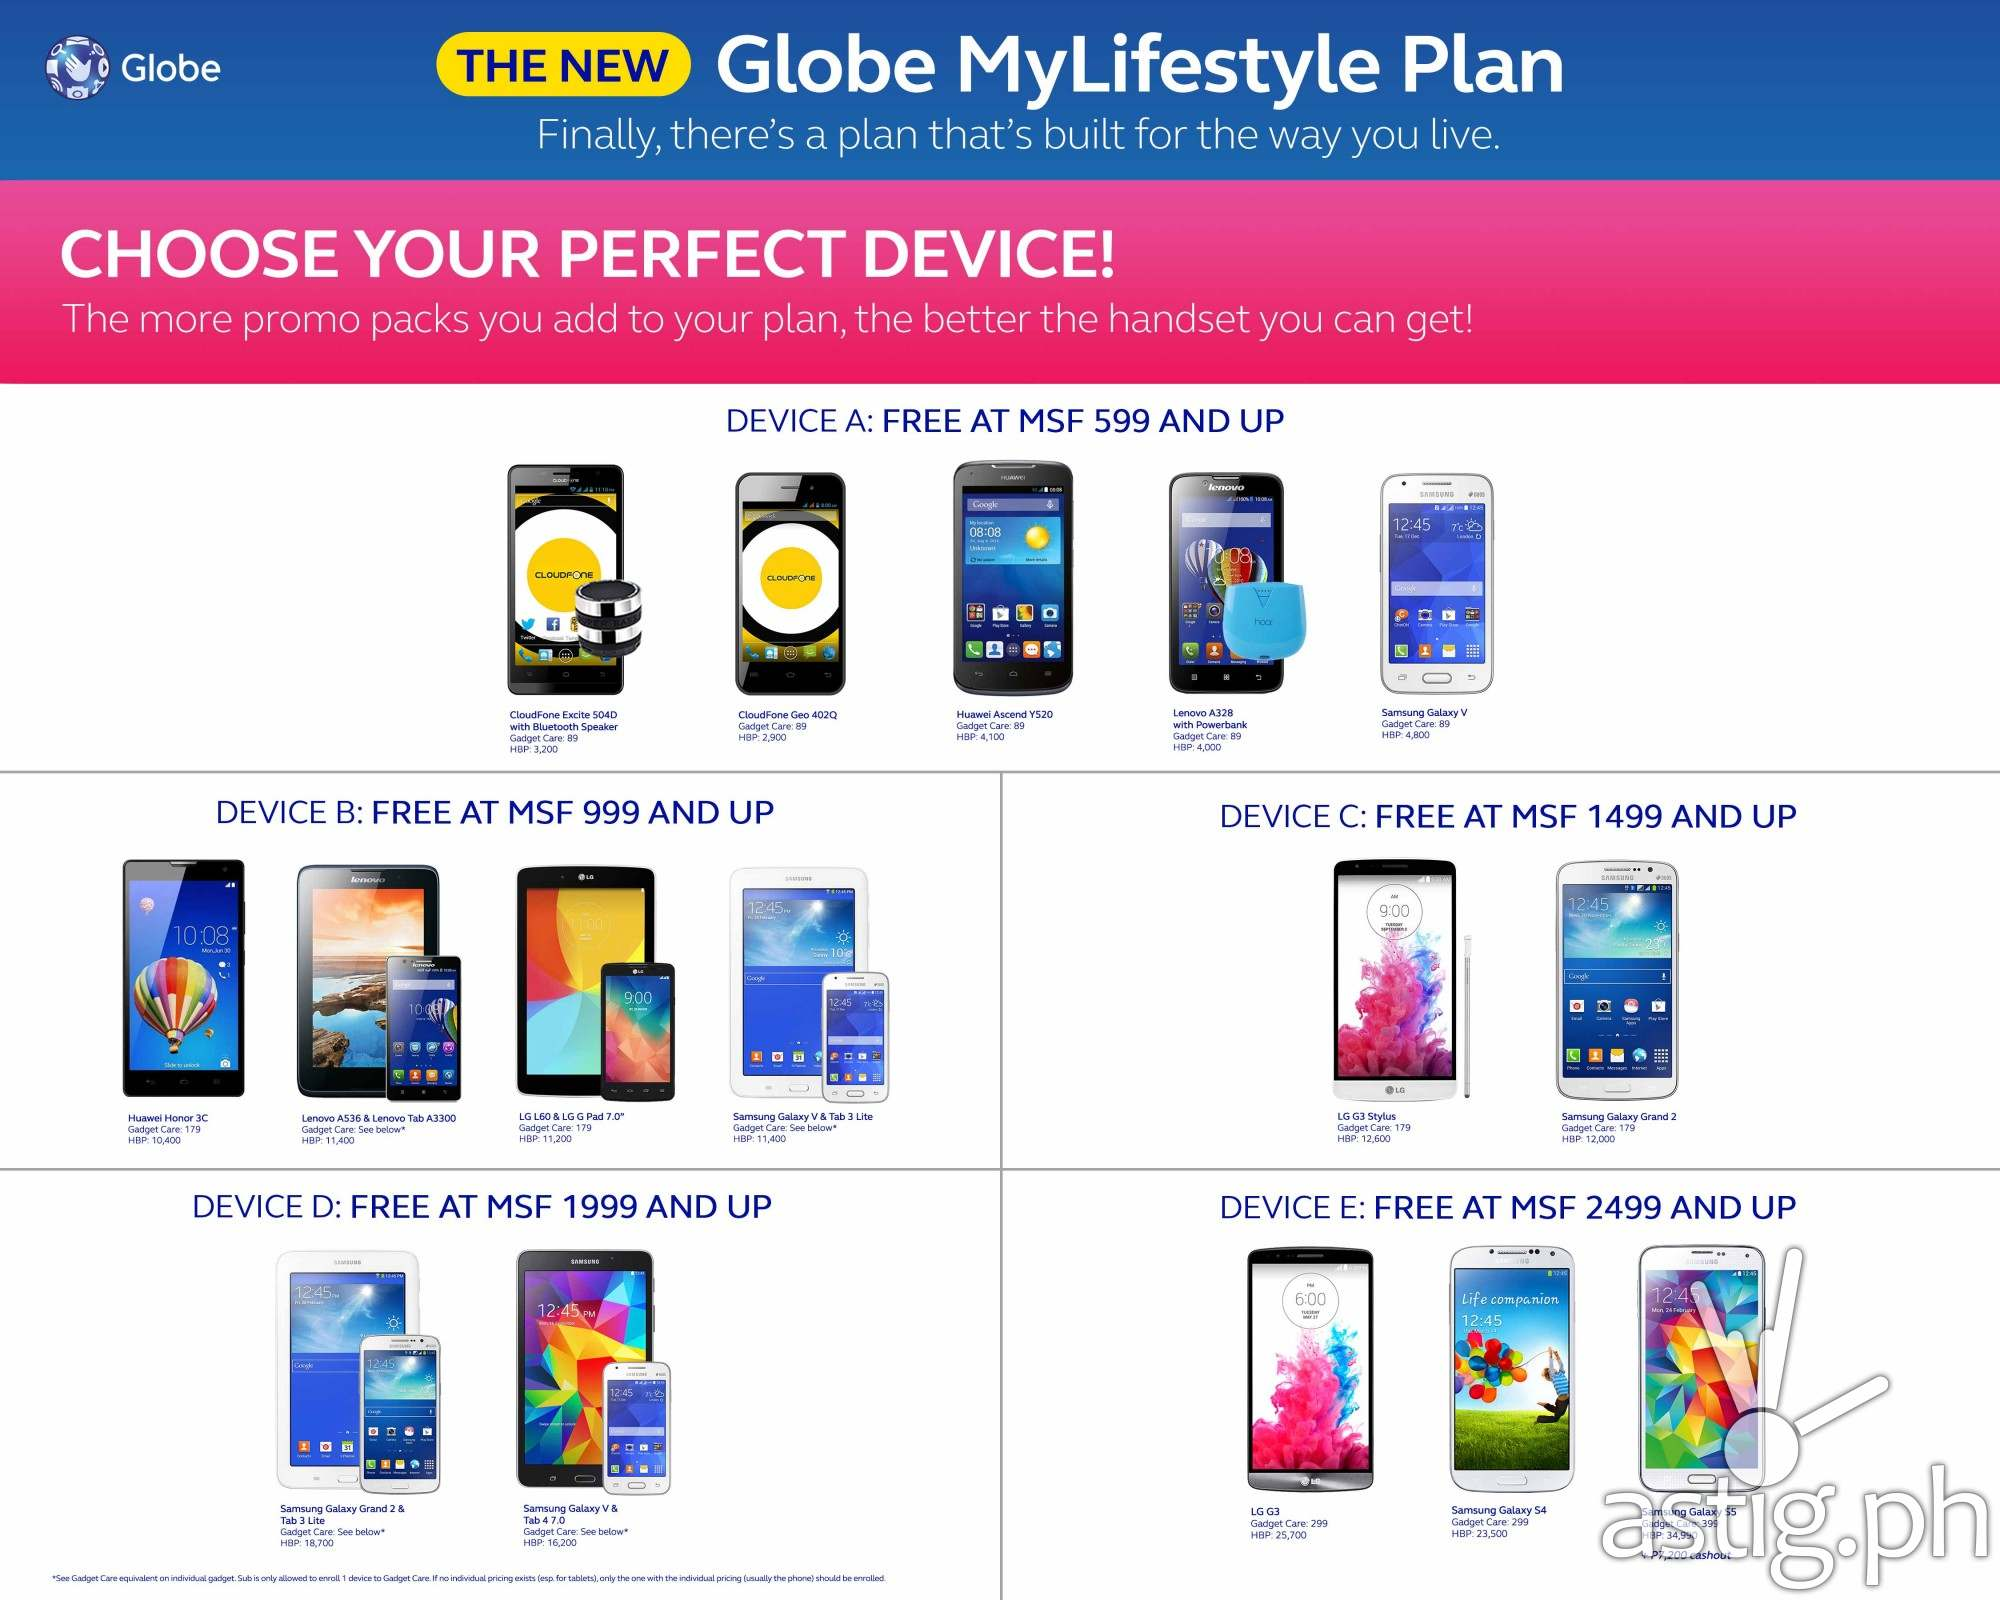 globe mylifestyle replaces all postpaid plans at p499